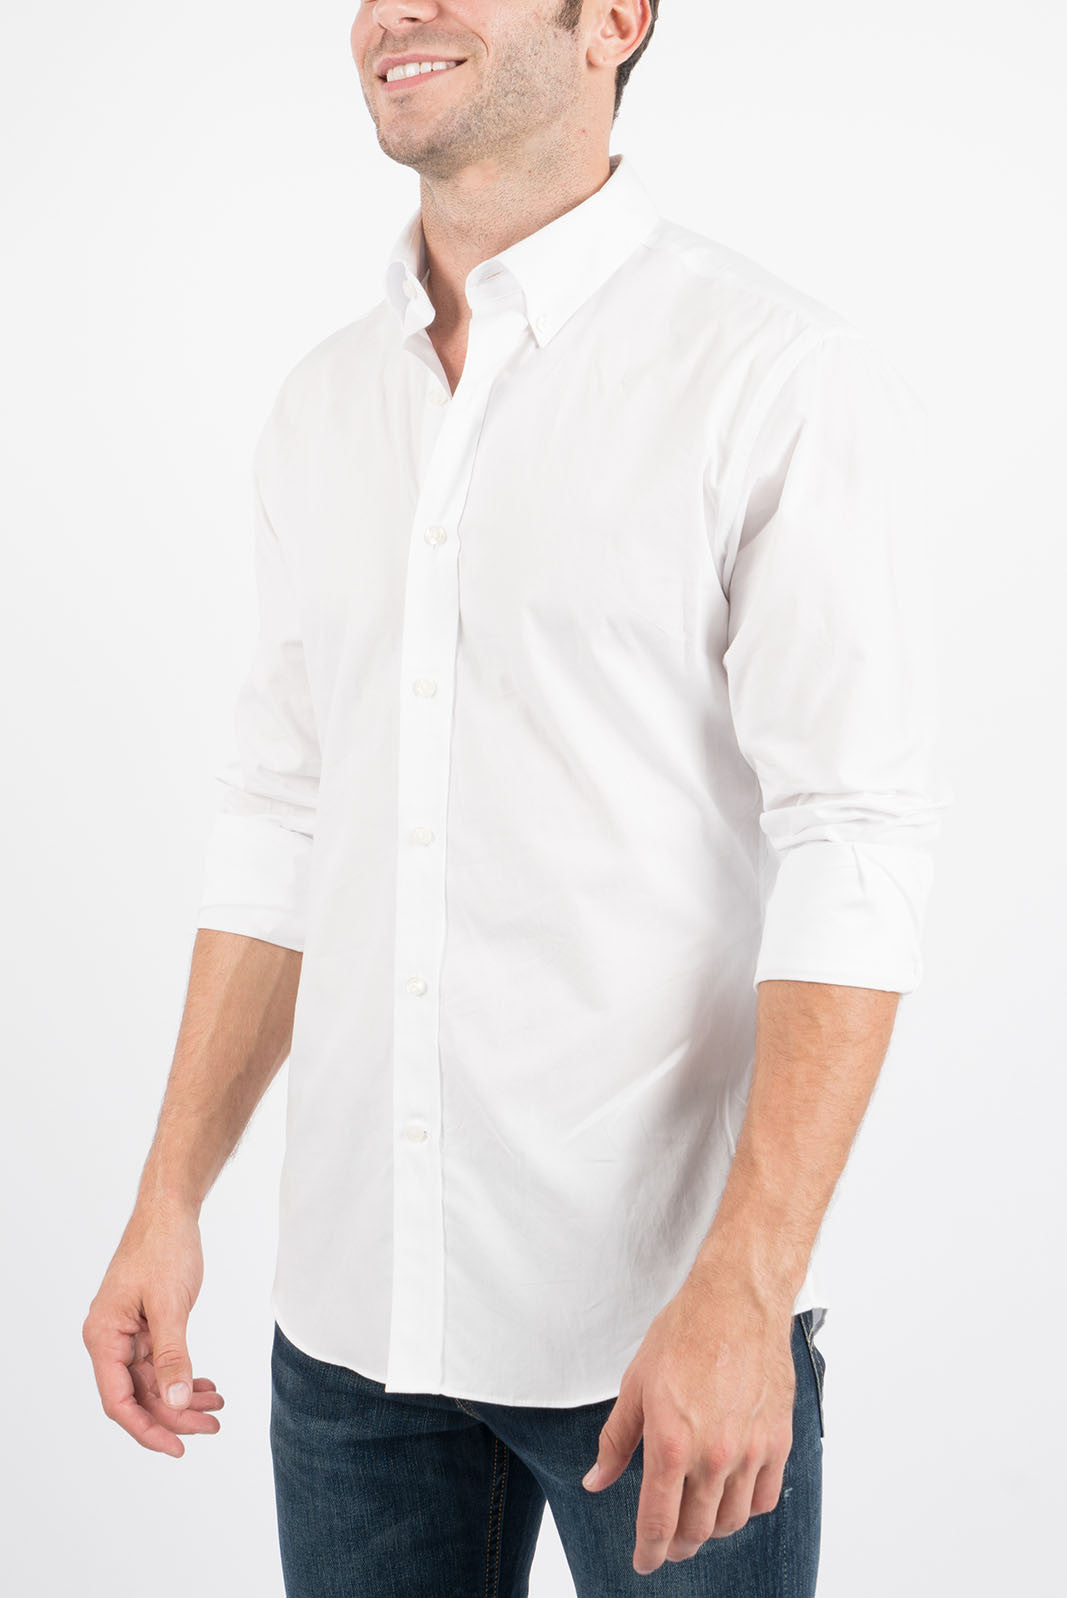 Washed White: Semi-Spread Collar, Long Sleeve